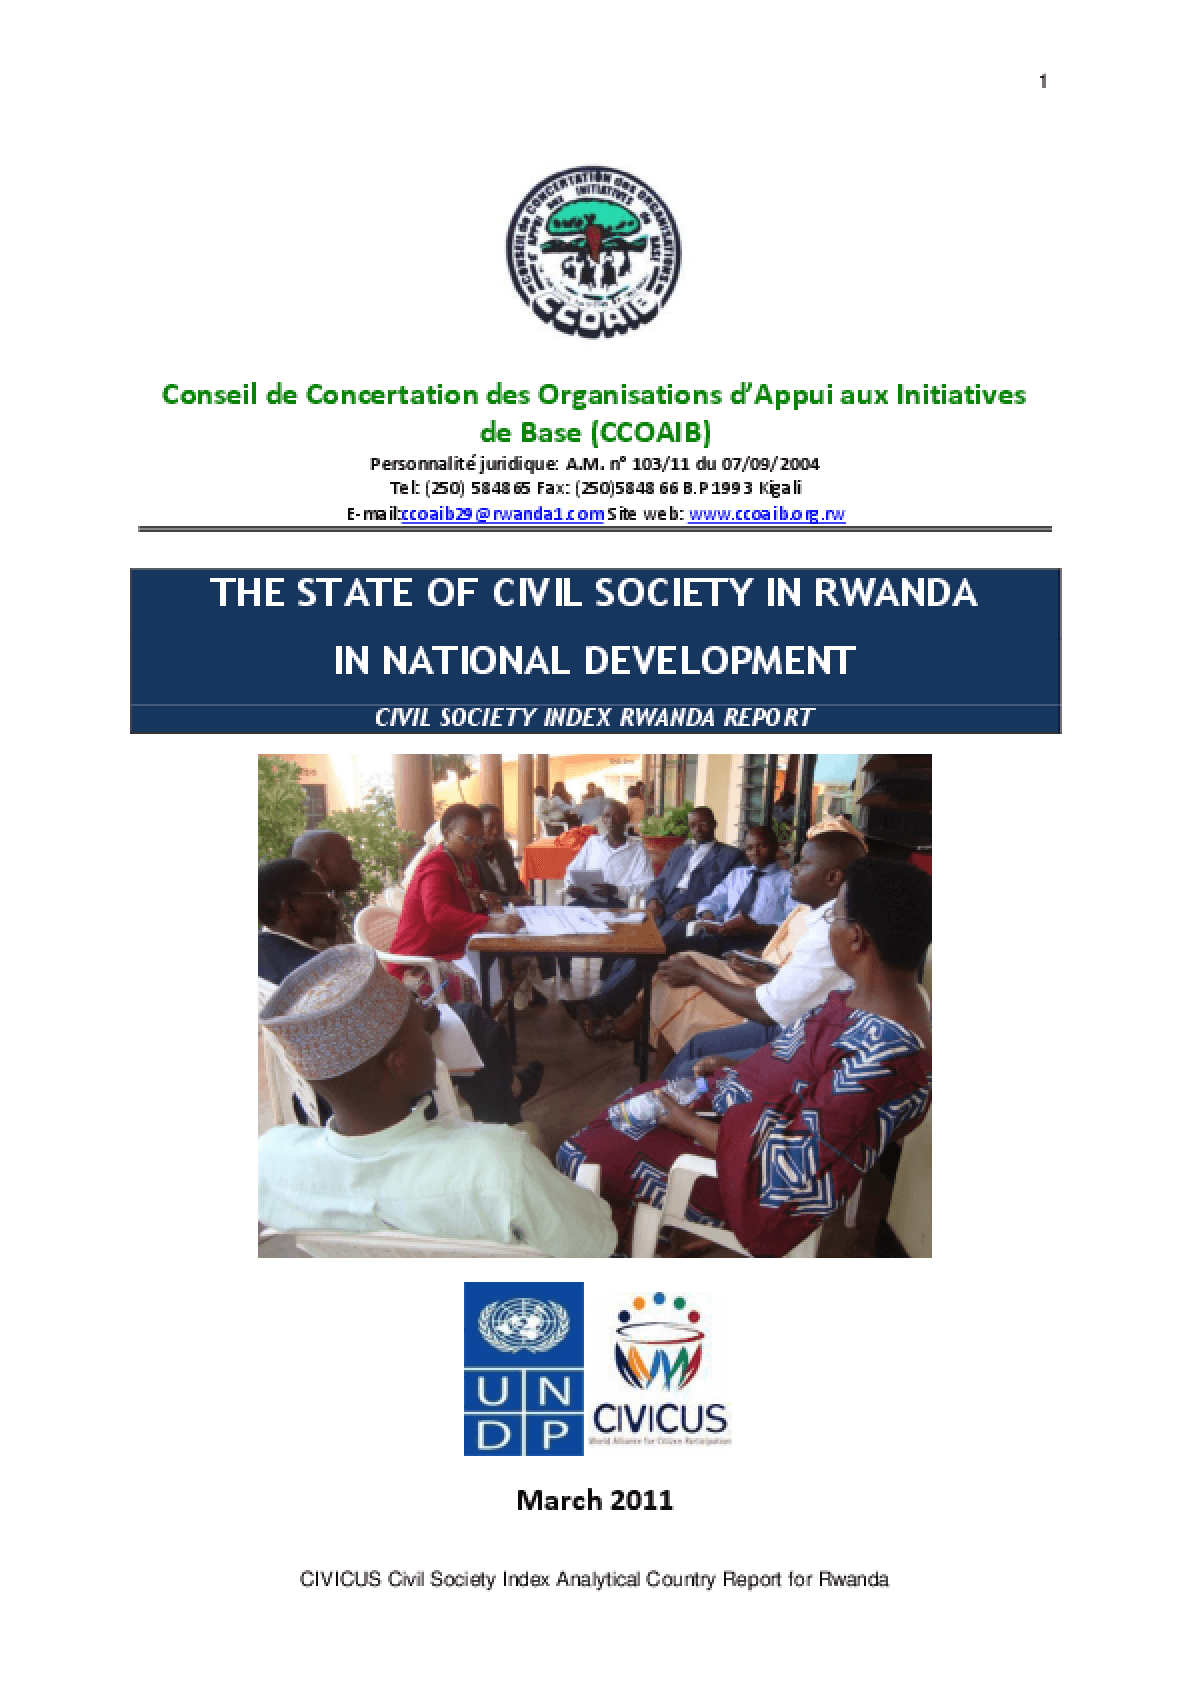 The State of Civil Society in Rwanda in National Development Civil Society Index Rwanda Report: Civil Society Index Rwanda Report